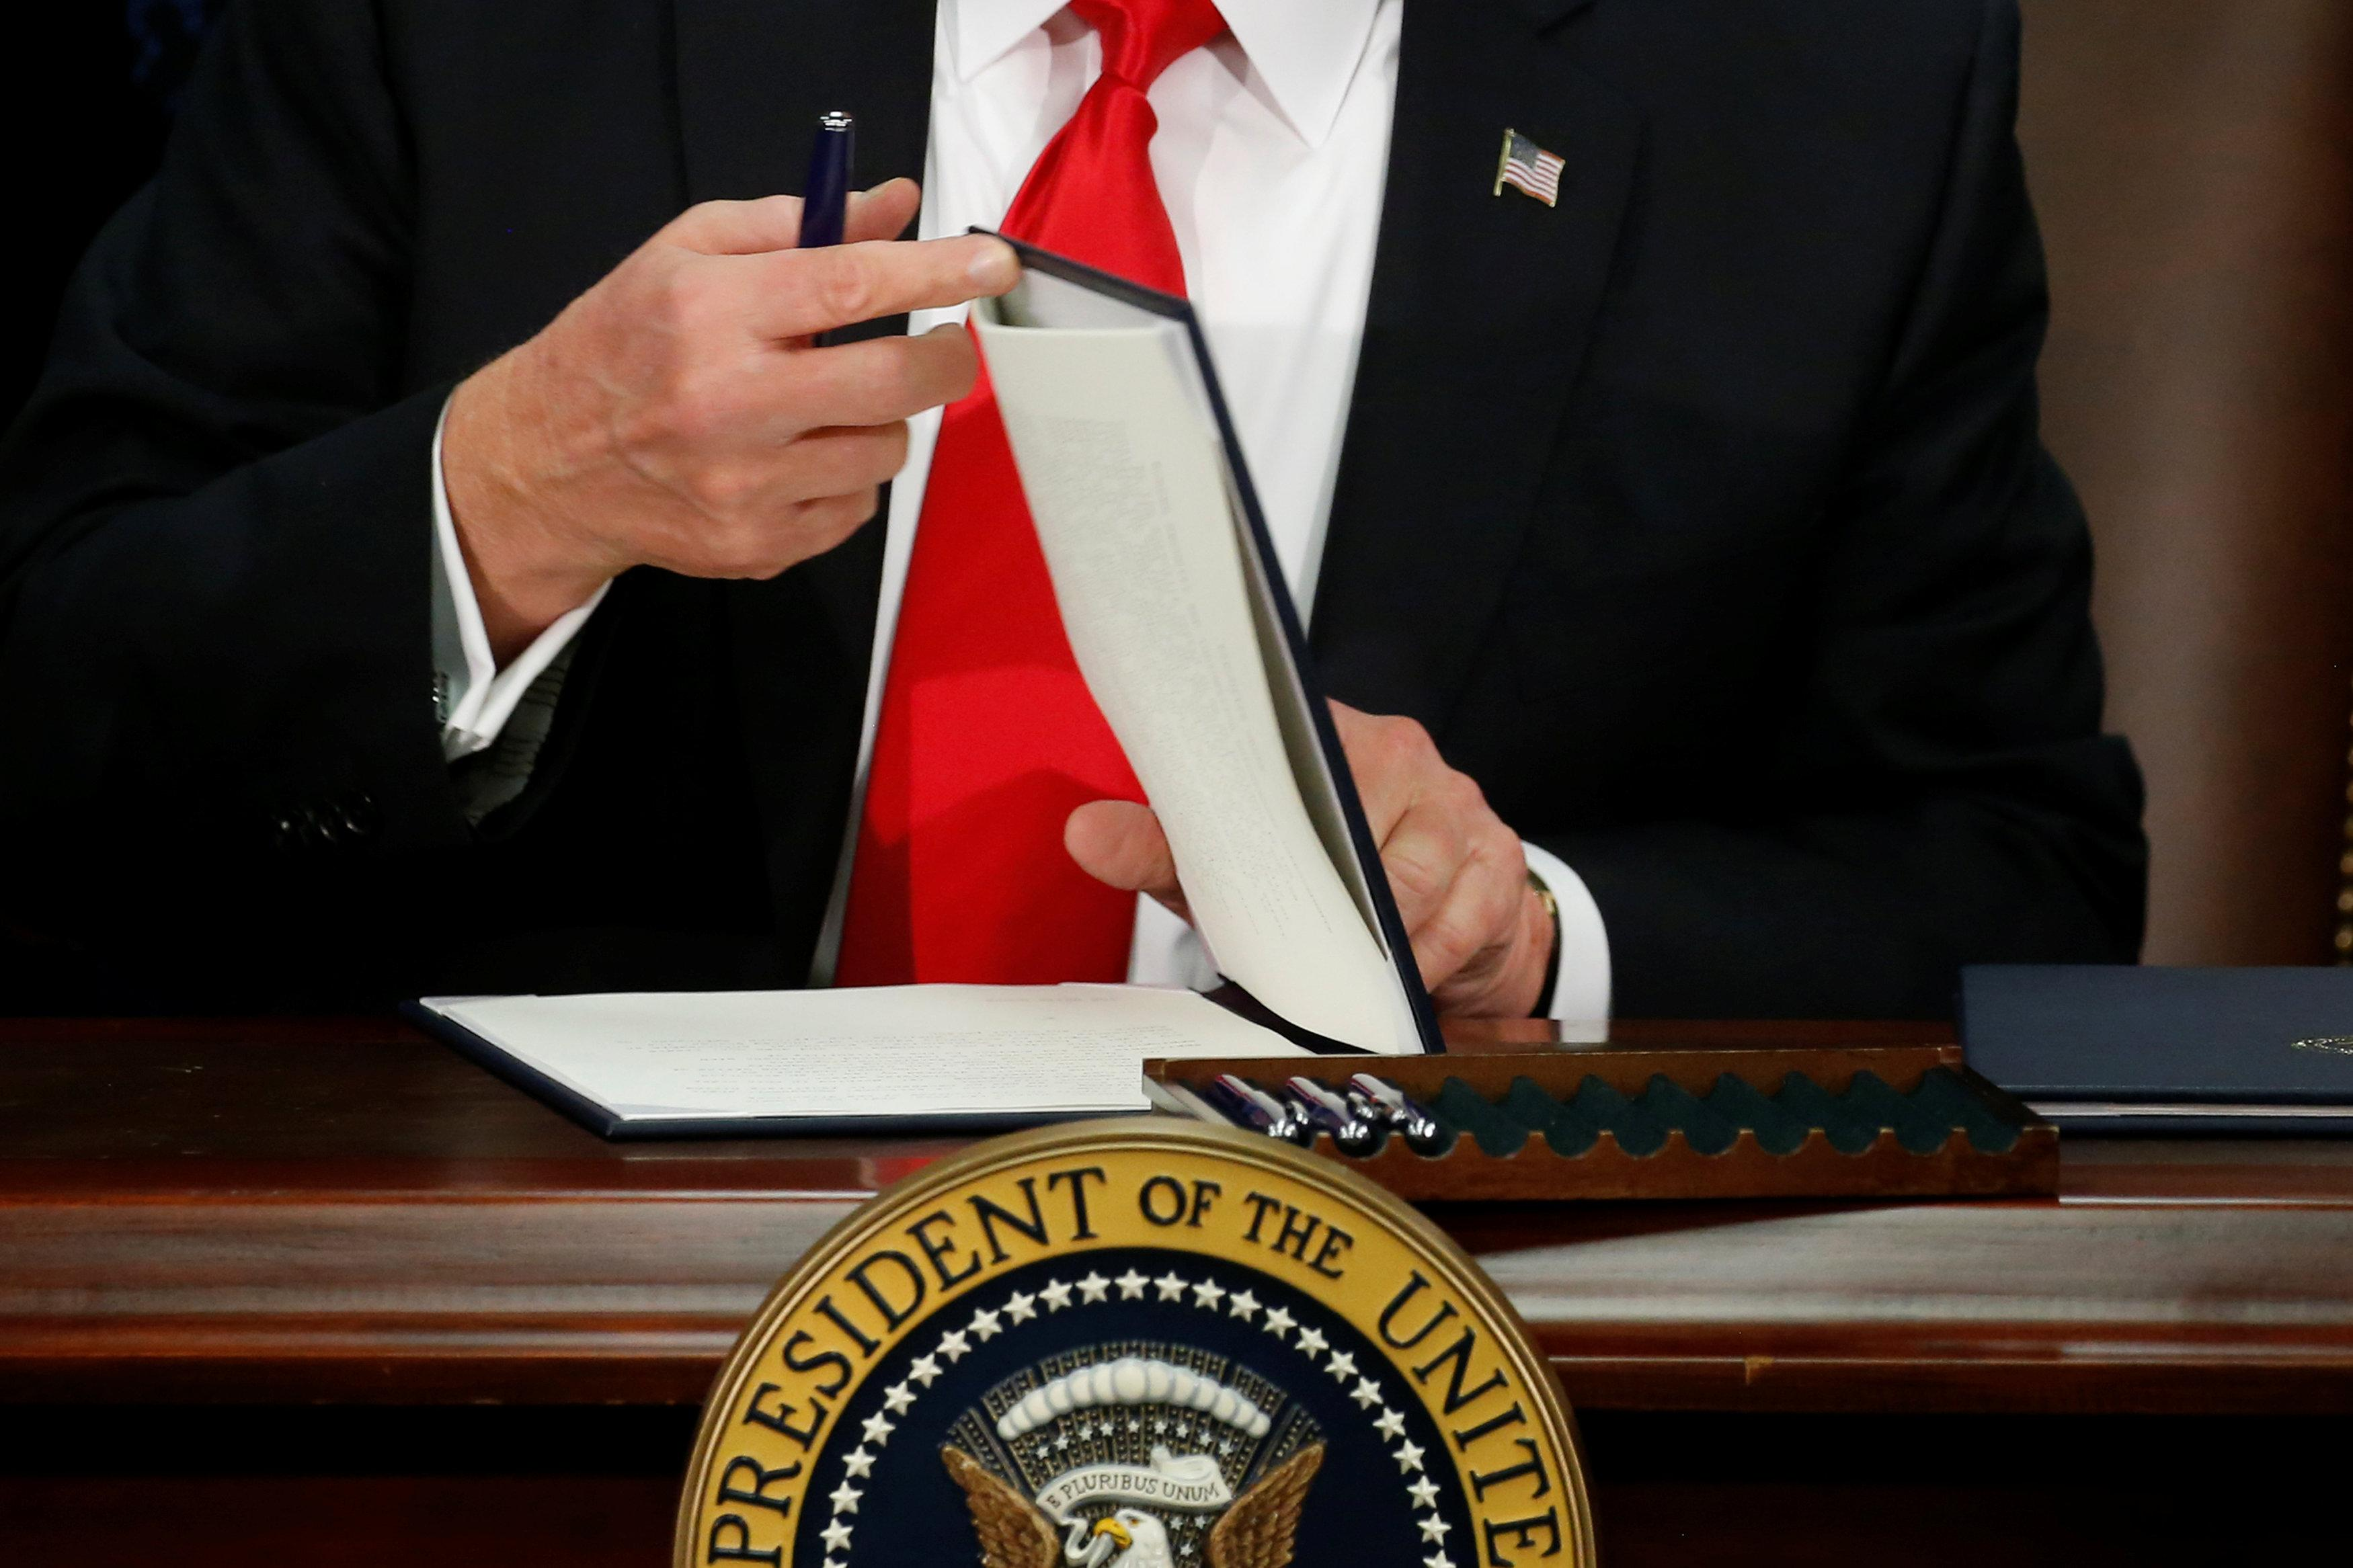 U.S. President Donald Trump prepares to sign an executive order at Homeland Security headquarters in Washington, U.S., January 25, 2017. REUTERS/Jonathan Ernst